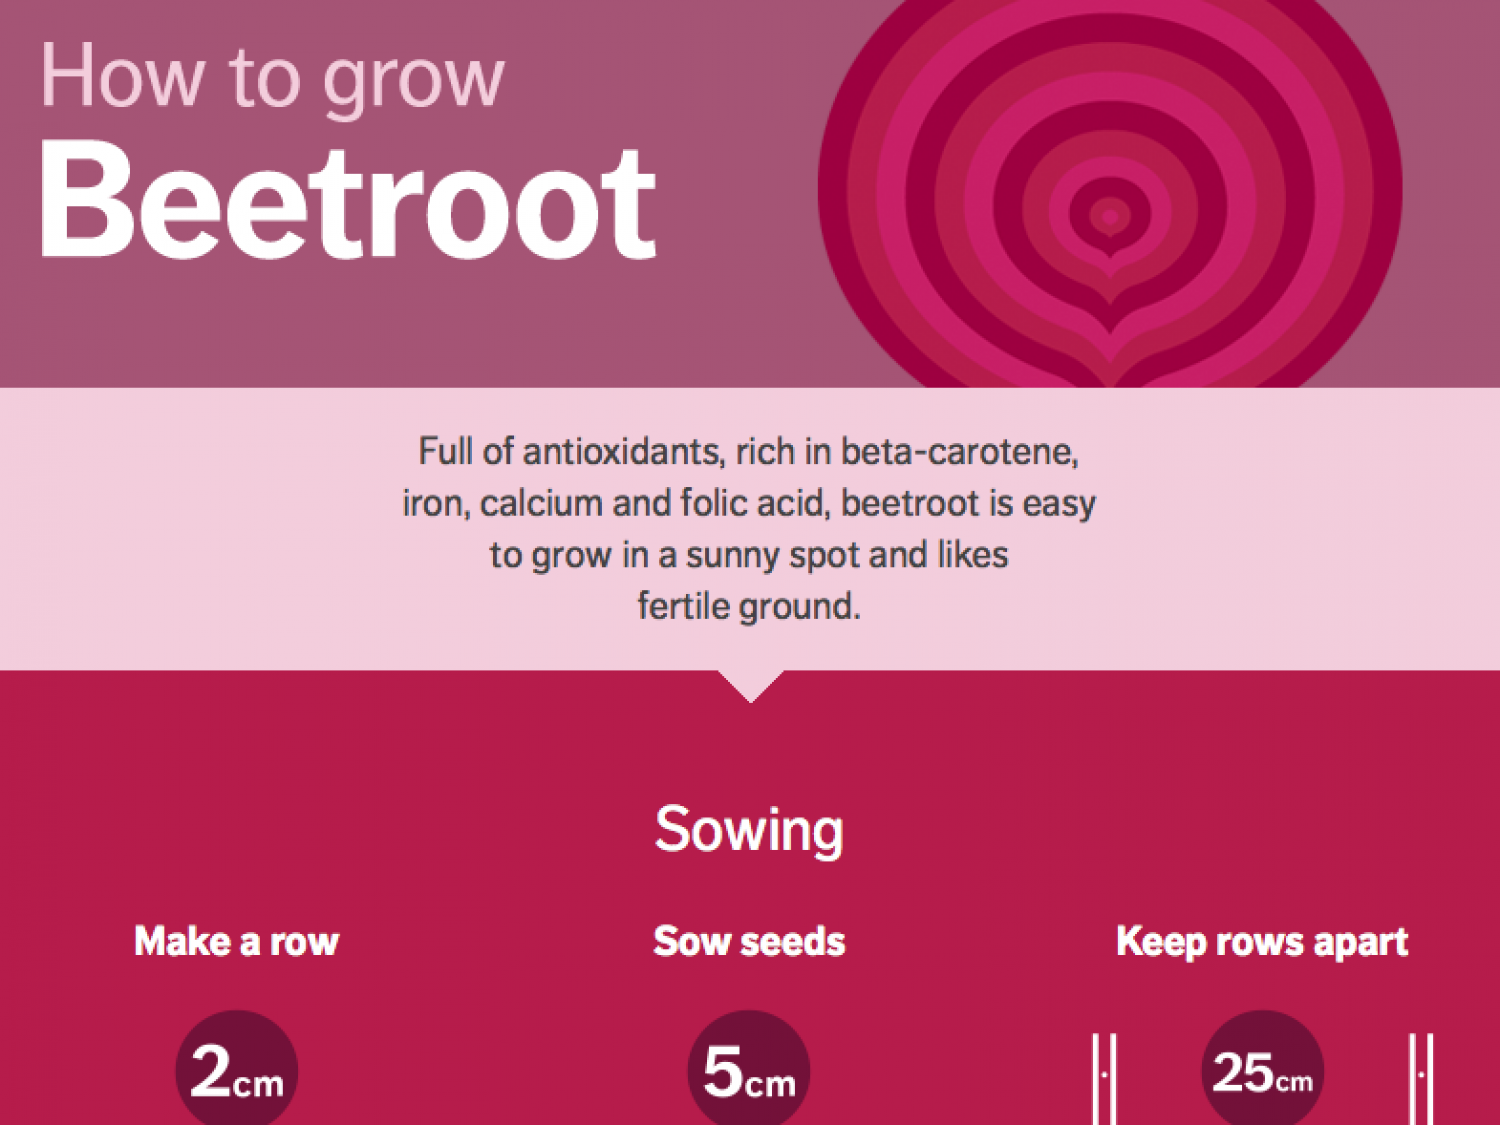 How to Grow Beetroot Infographic